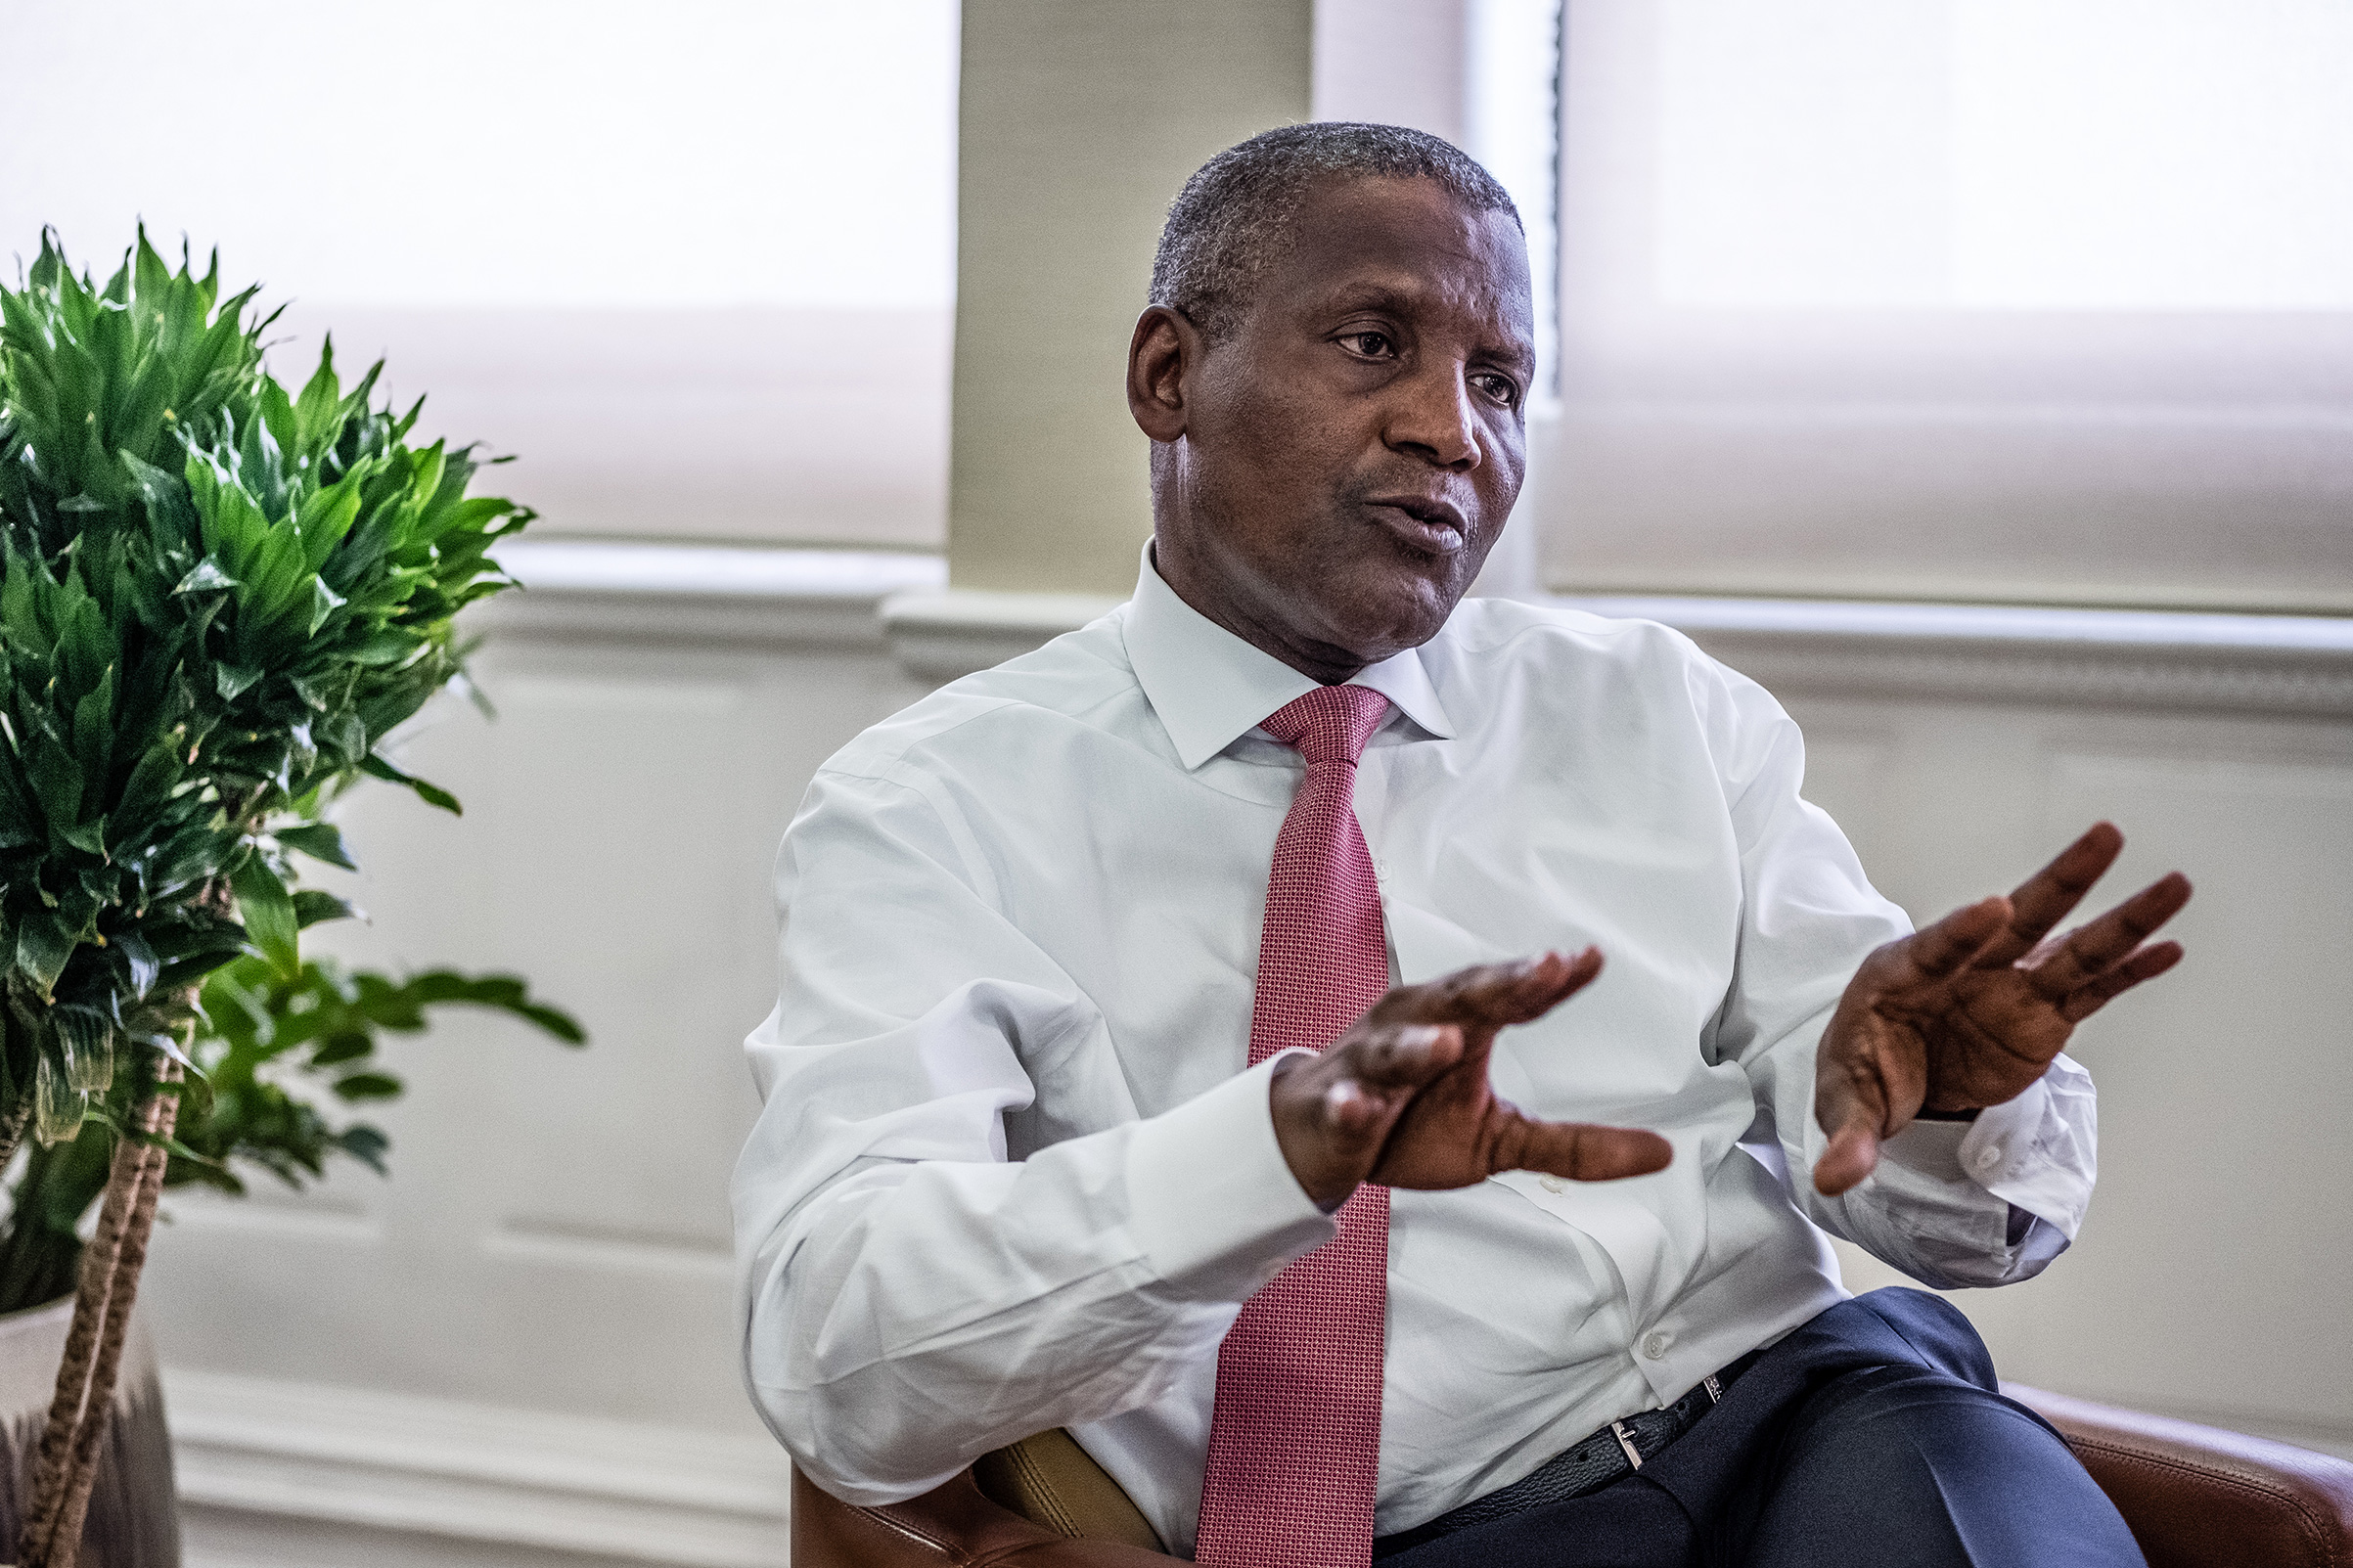 57,000 personnel to benefit from work at refinery site, says Dangote